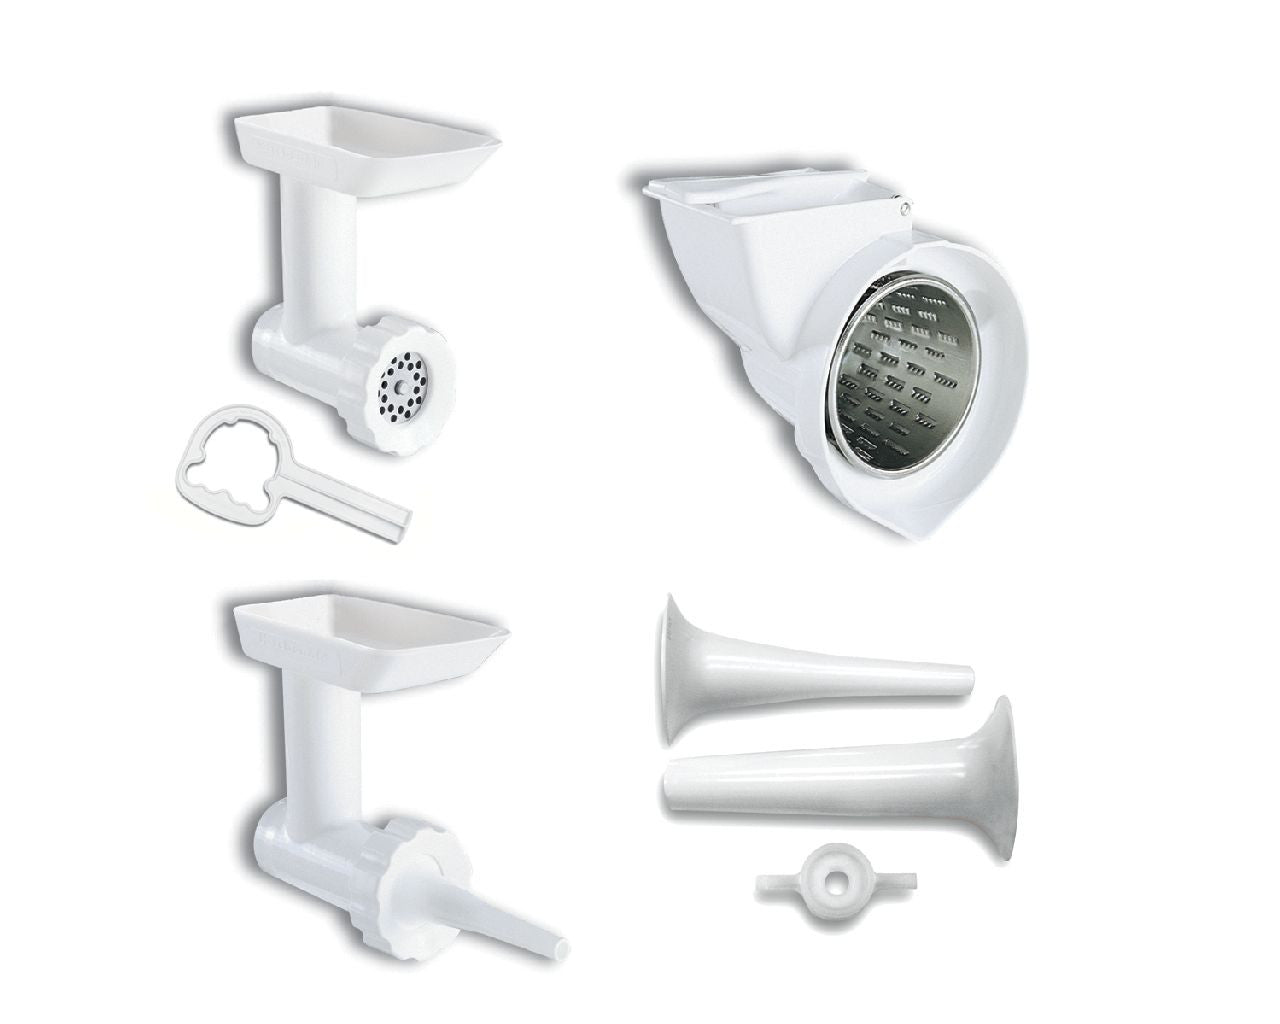 Kitchenaid Mixer Attachment Pack #2: - Food Grinder, Rotor Slicer/Shredder,  Sausage Stuffer Kit - KGSSA